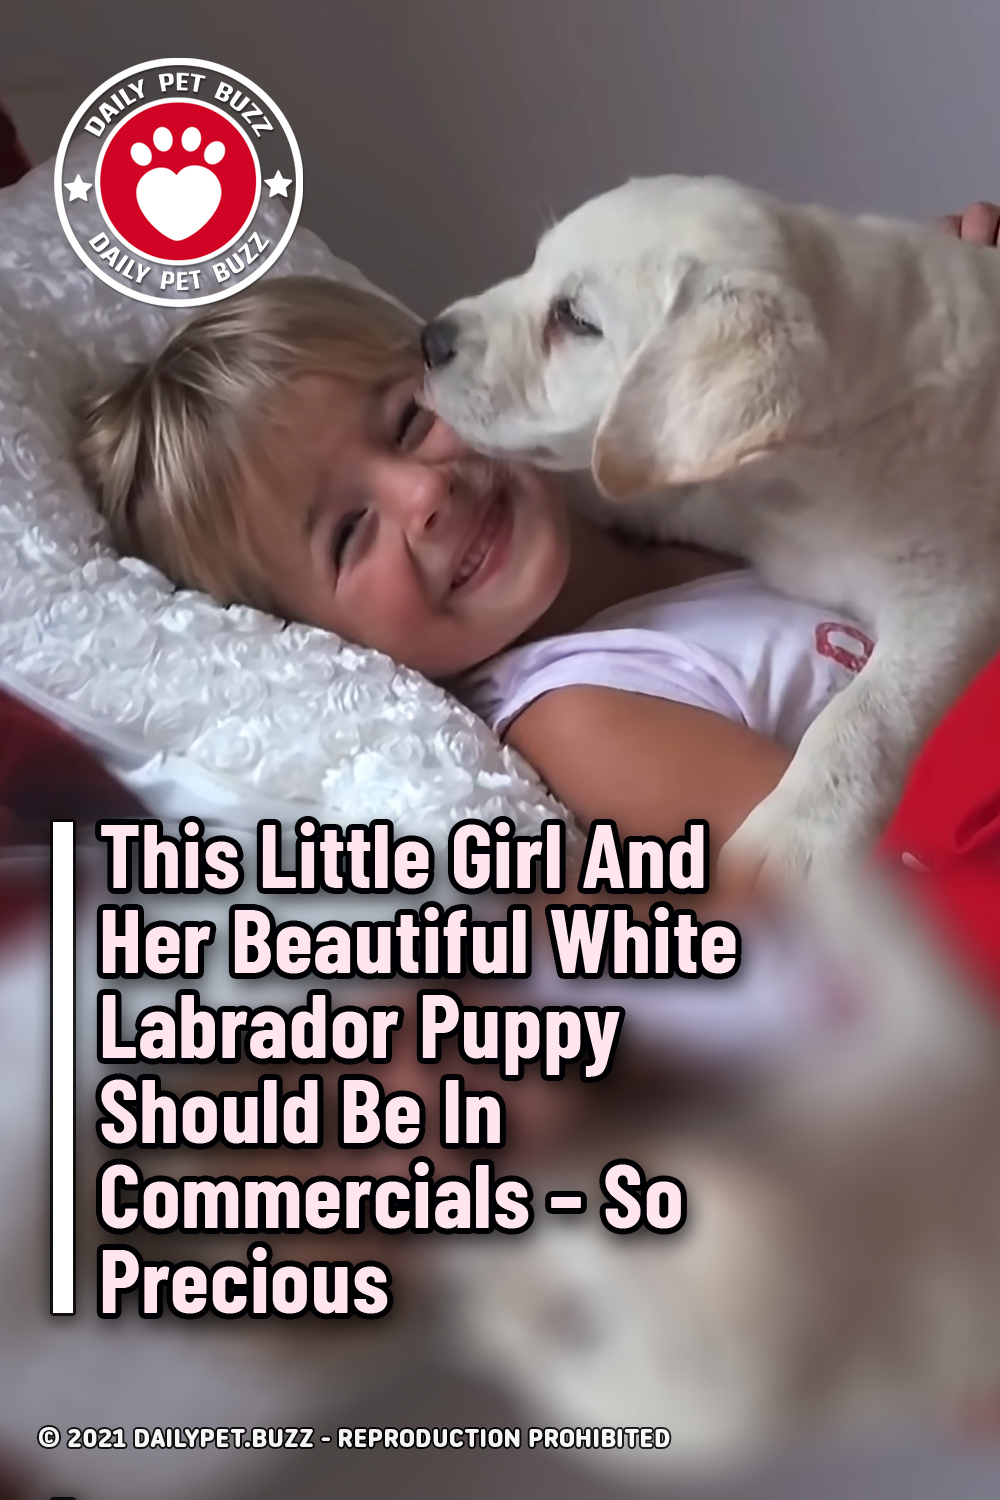 This Little Girl And Her Beautiful White Labrador Puppy Should Be In Commercials – So Precious